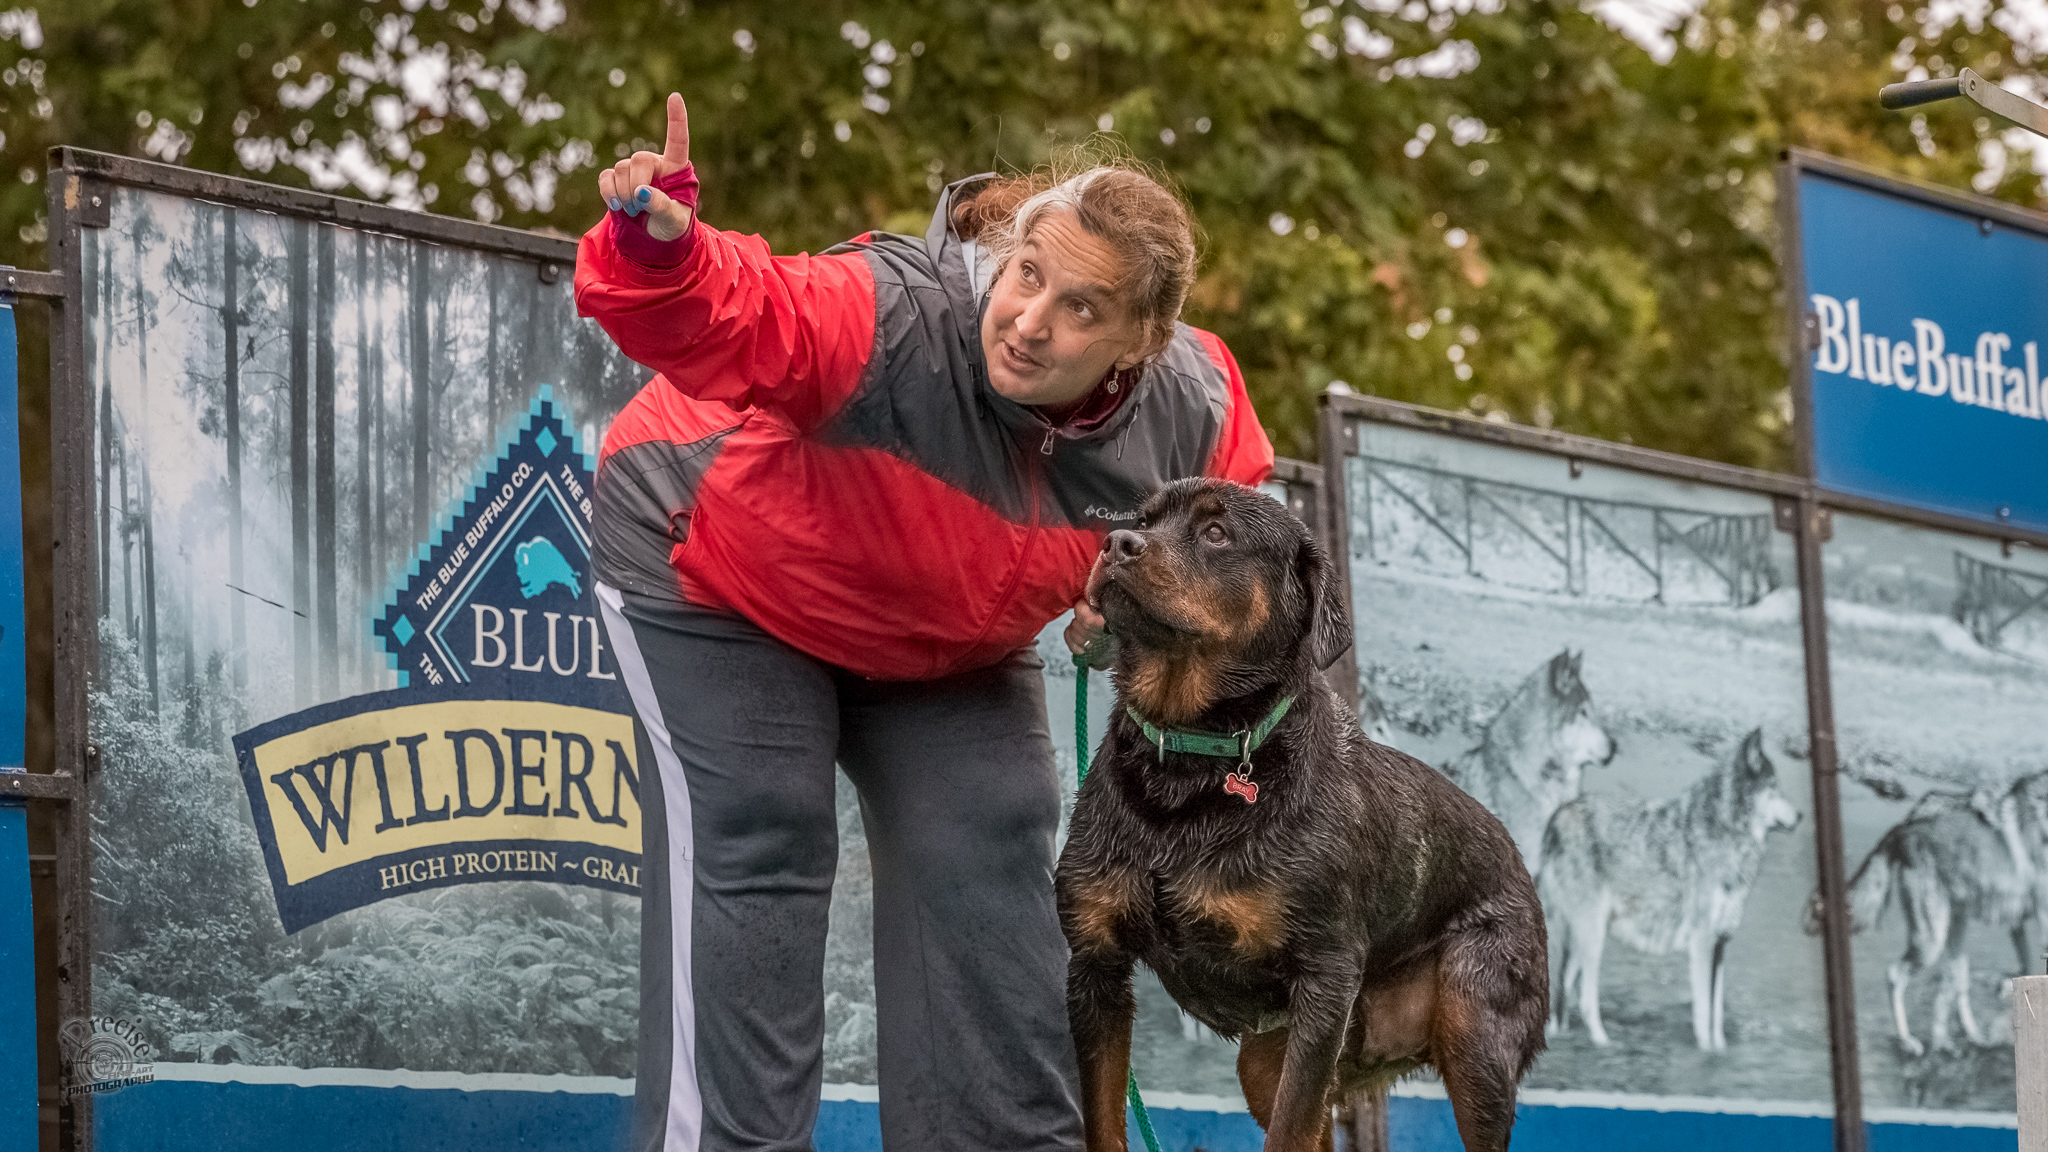 Buckeye DockDogs Midwest Outdoor Expo. Photo by Jim Zelasko, All Rights Reserved